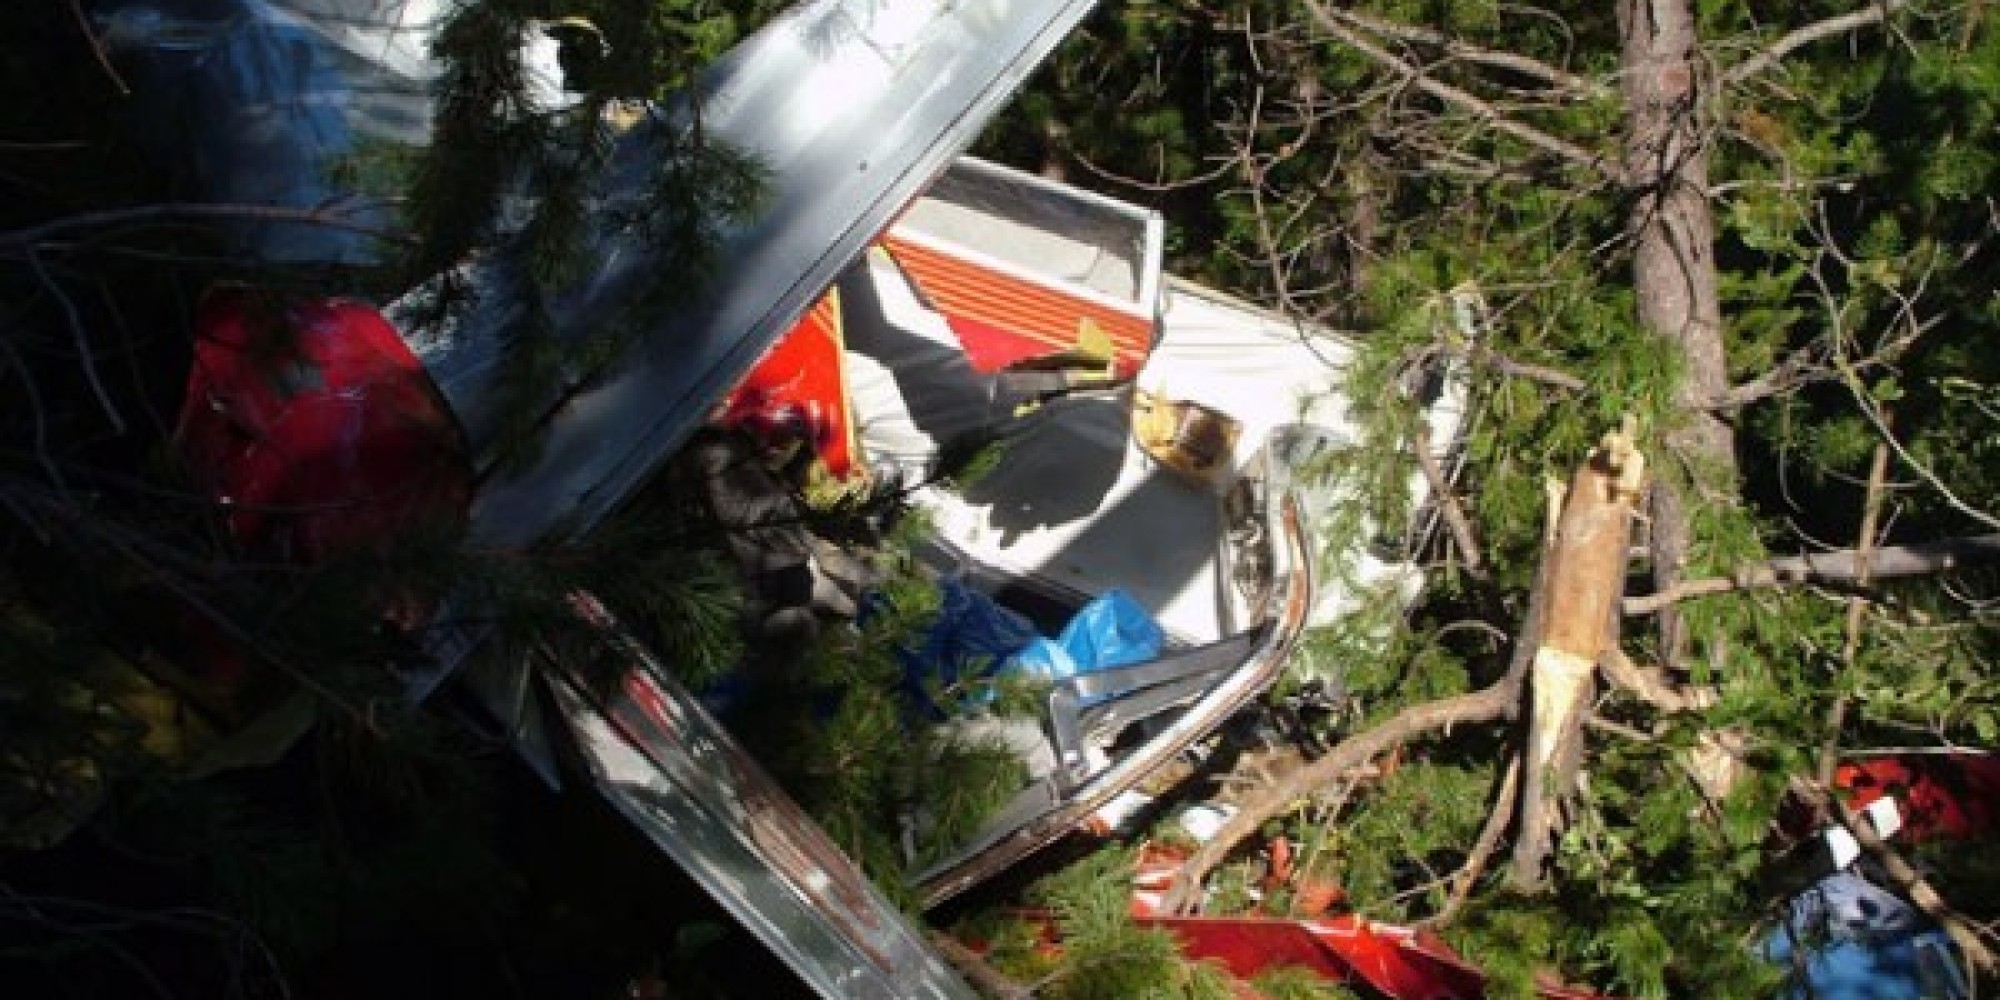 Plane Crash Bodies Photos O-brenda-mills-plane-crash- ...